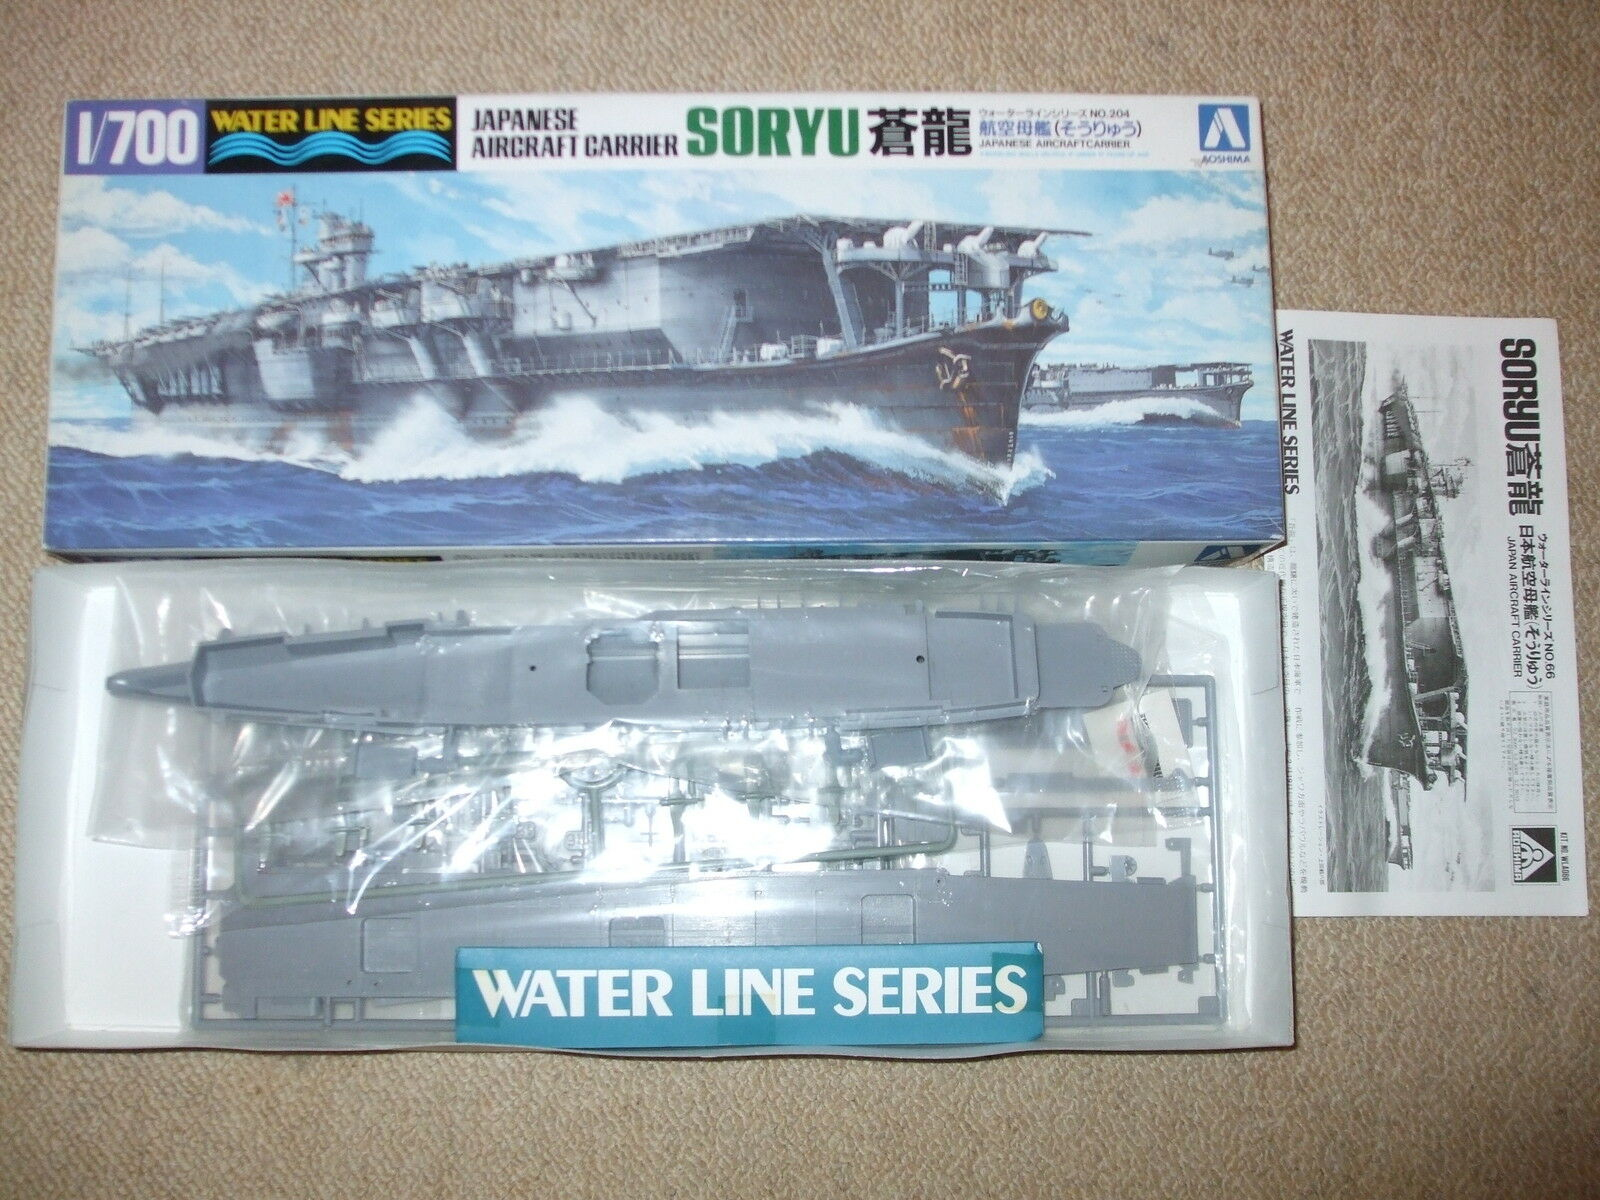 Aoshima - Japanese Aircraft Carrier Soryu - 1.700 - Contents New & Sealed